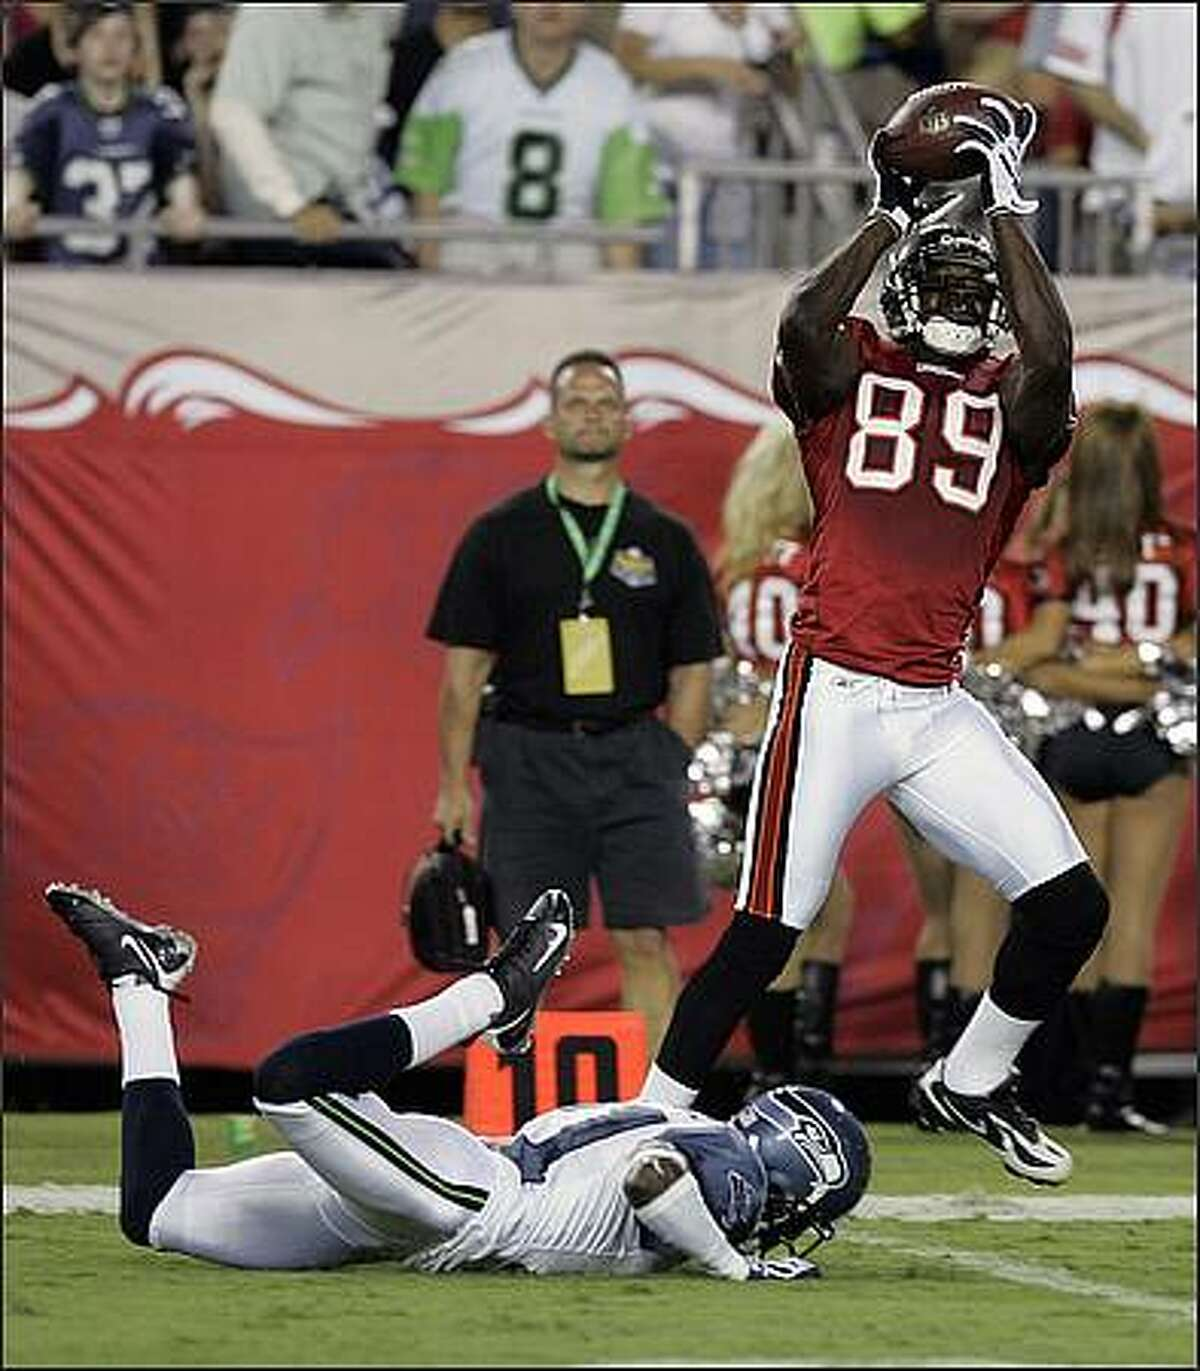 Tampa Bay Buccaneers wide receiver Antonio Bryant catches a 47-yard touchdown pass in front of Seattle Seahawks cornerback Kelly Jennings during the first half.